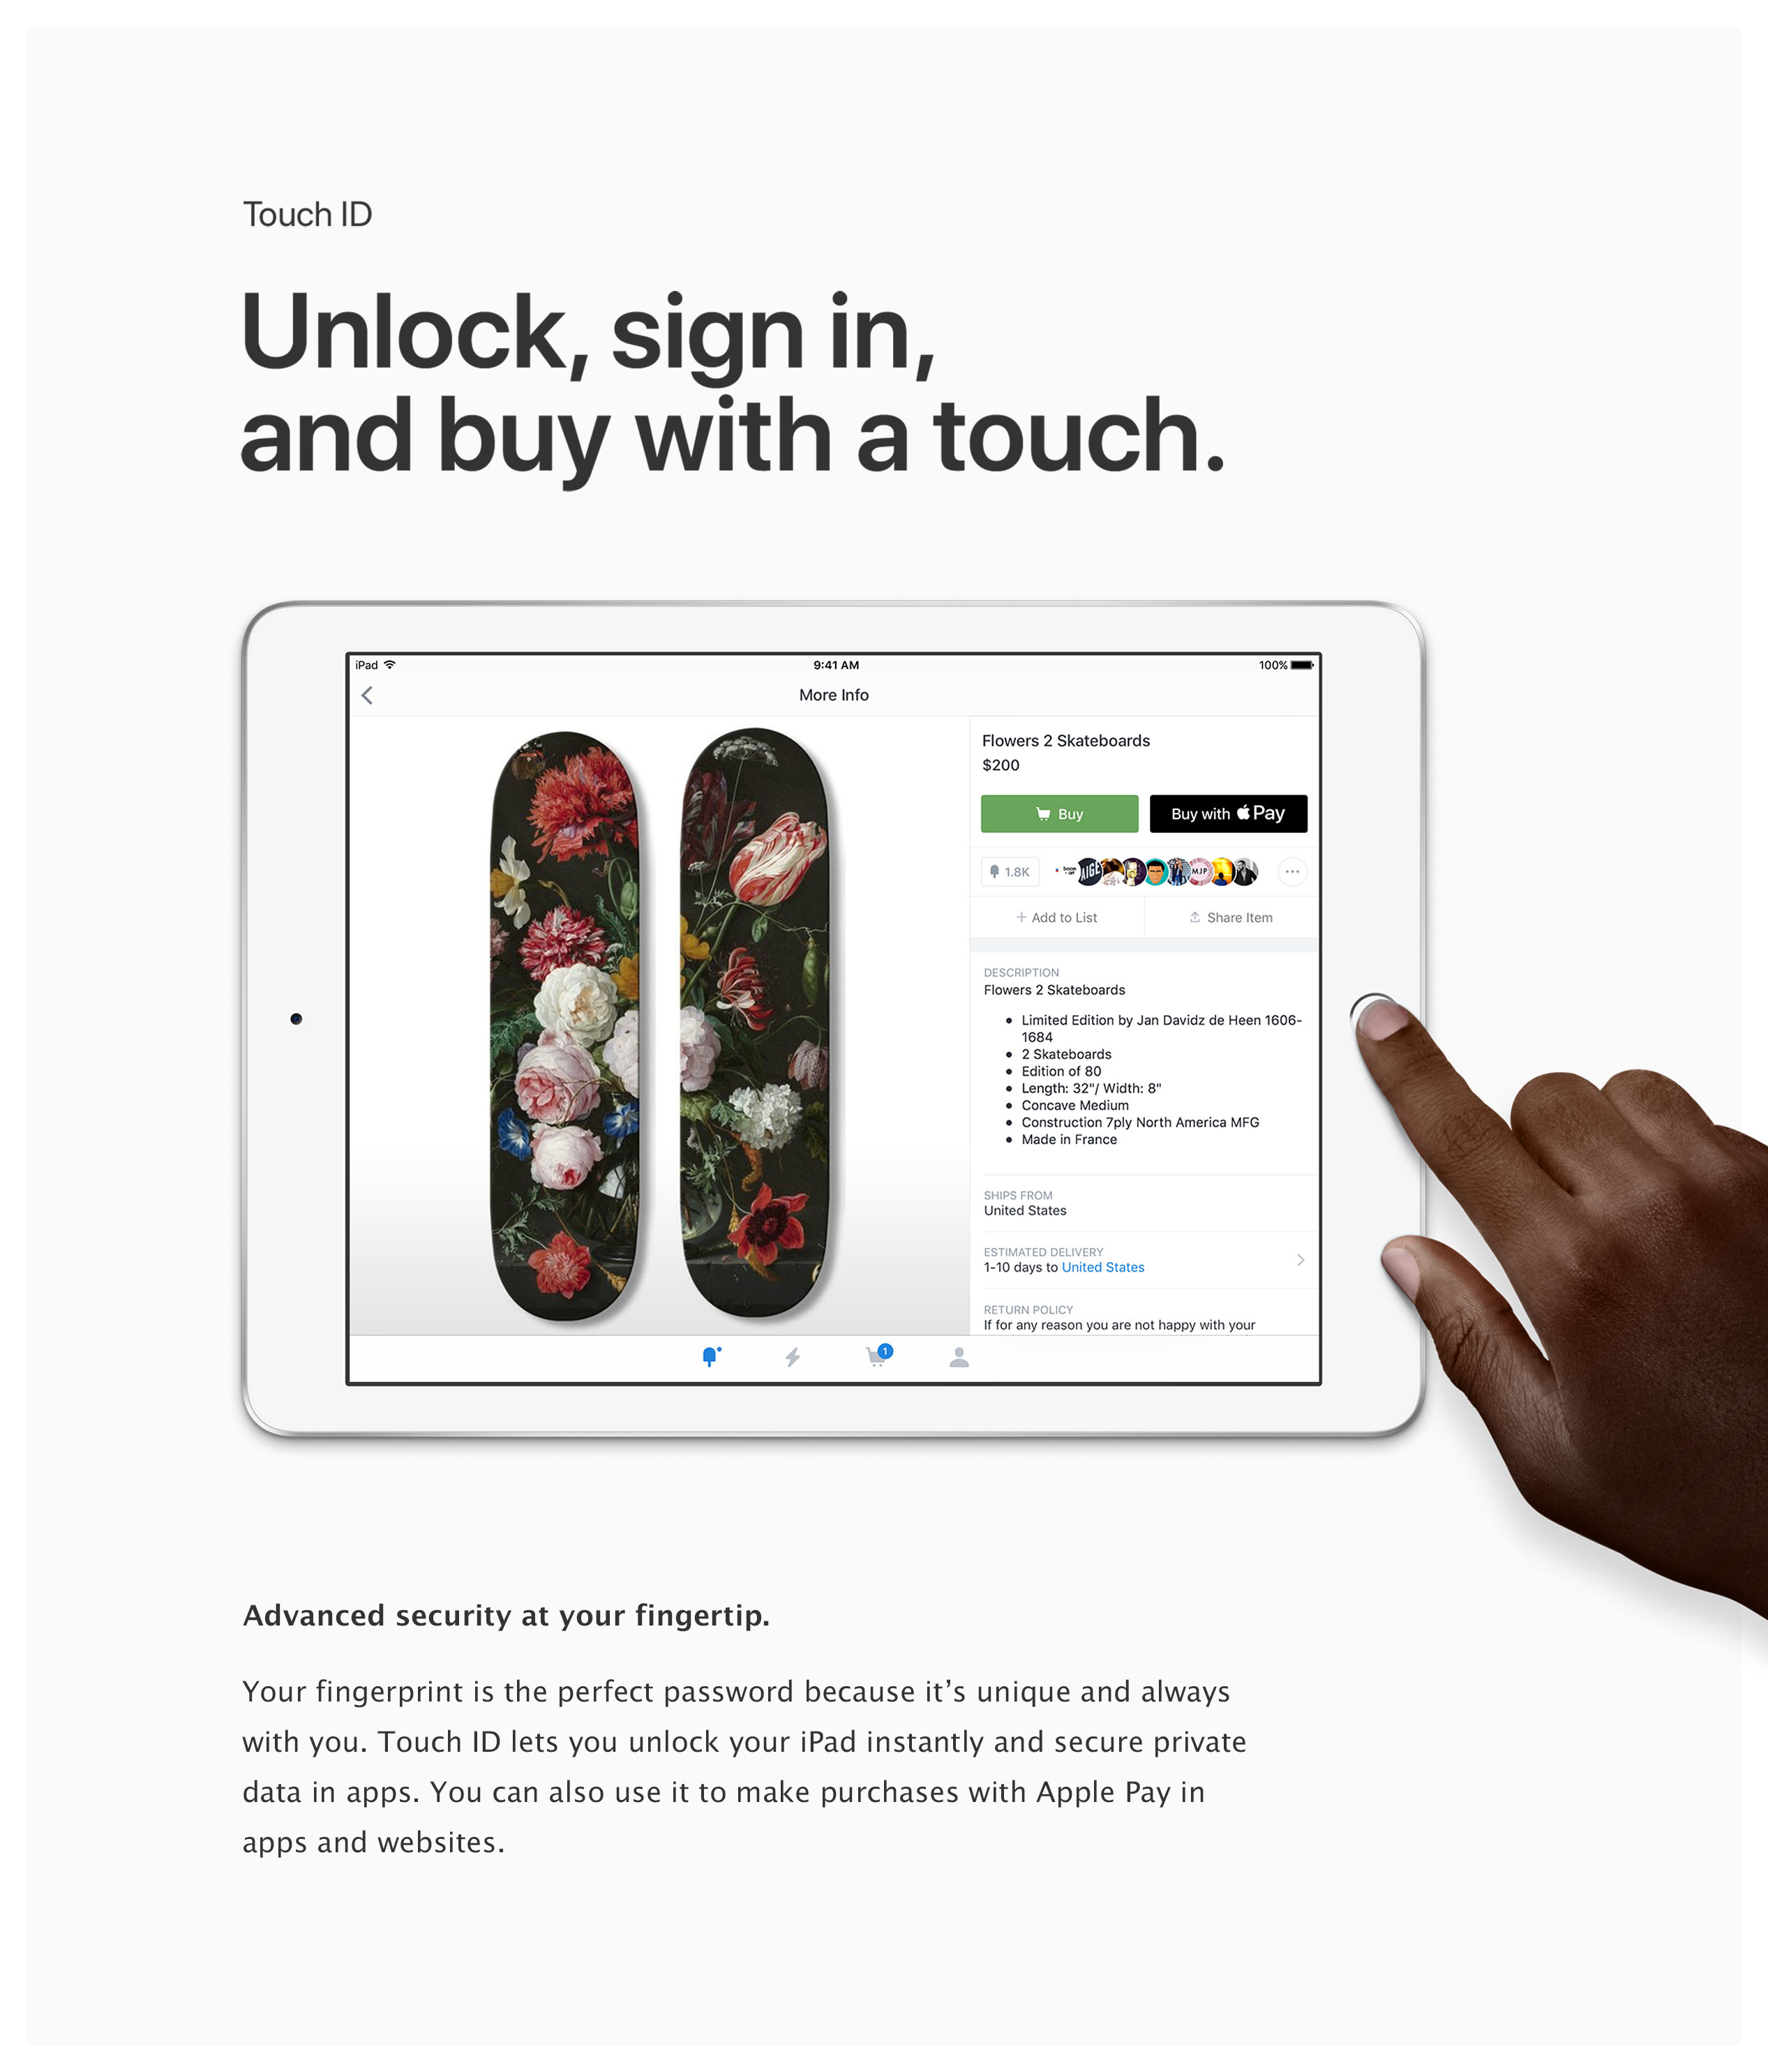 Touch ID: Unlock, sign in, and buy with a touch. Advanced security at your fingertip. Your fingerprint is the perfect password because it's unique and always with you. Touch ID lets you unlock your iPad instantly and secure private data in apps. You can also use it to make purchases with Apple Pay in apps and websites.